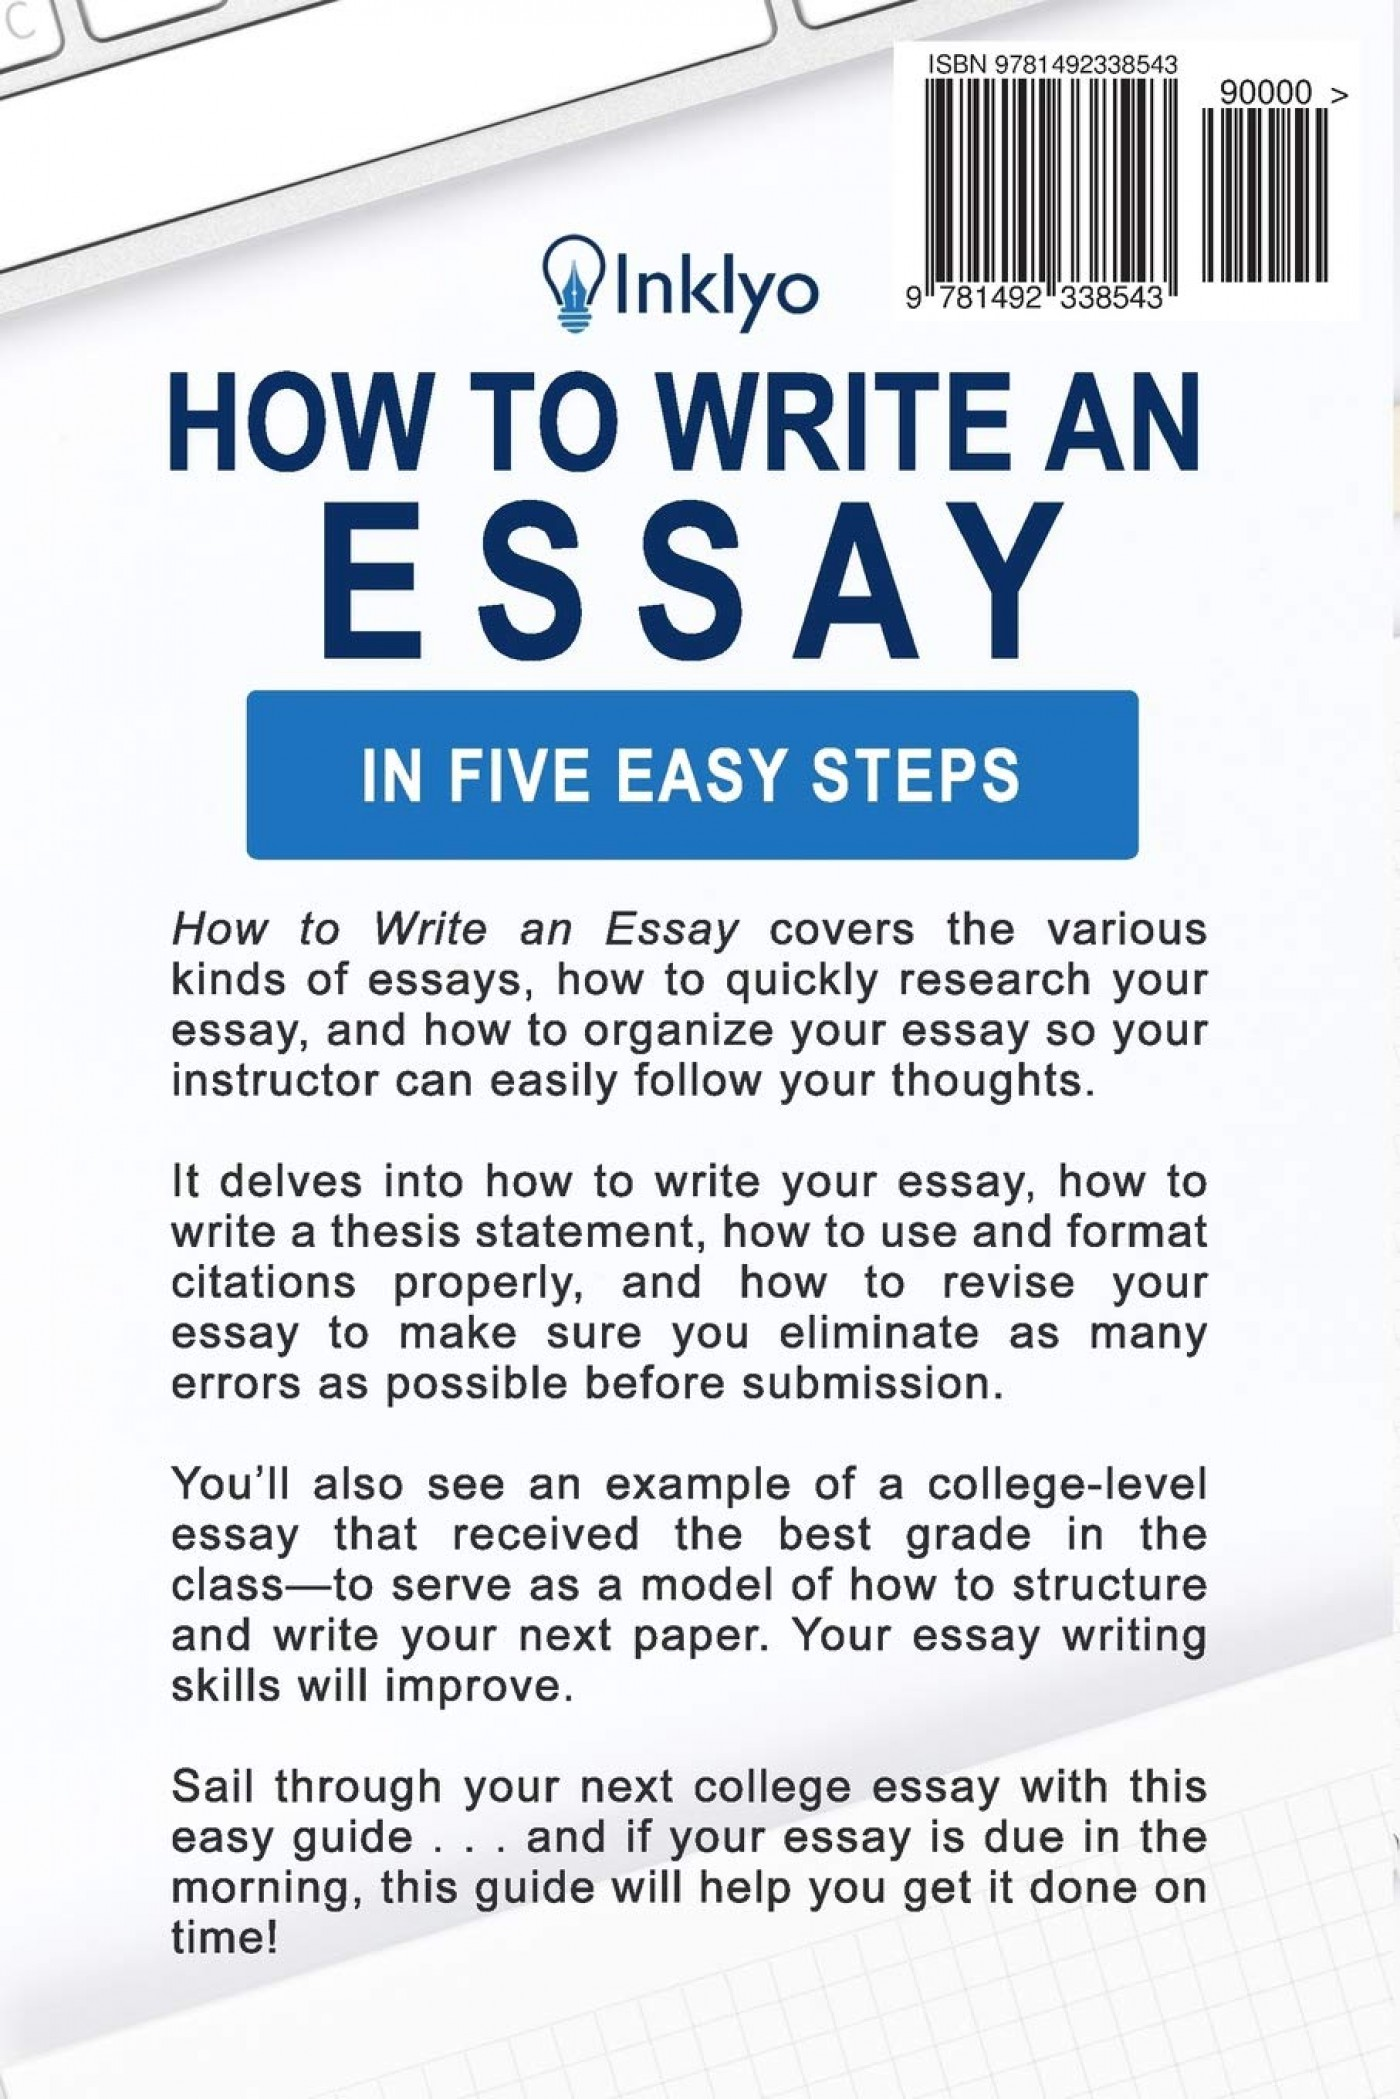 002 How To Write An Essay Example Shocking About Yourself Conclusion Pdf Academic Fast 1400